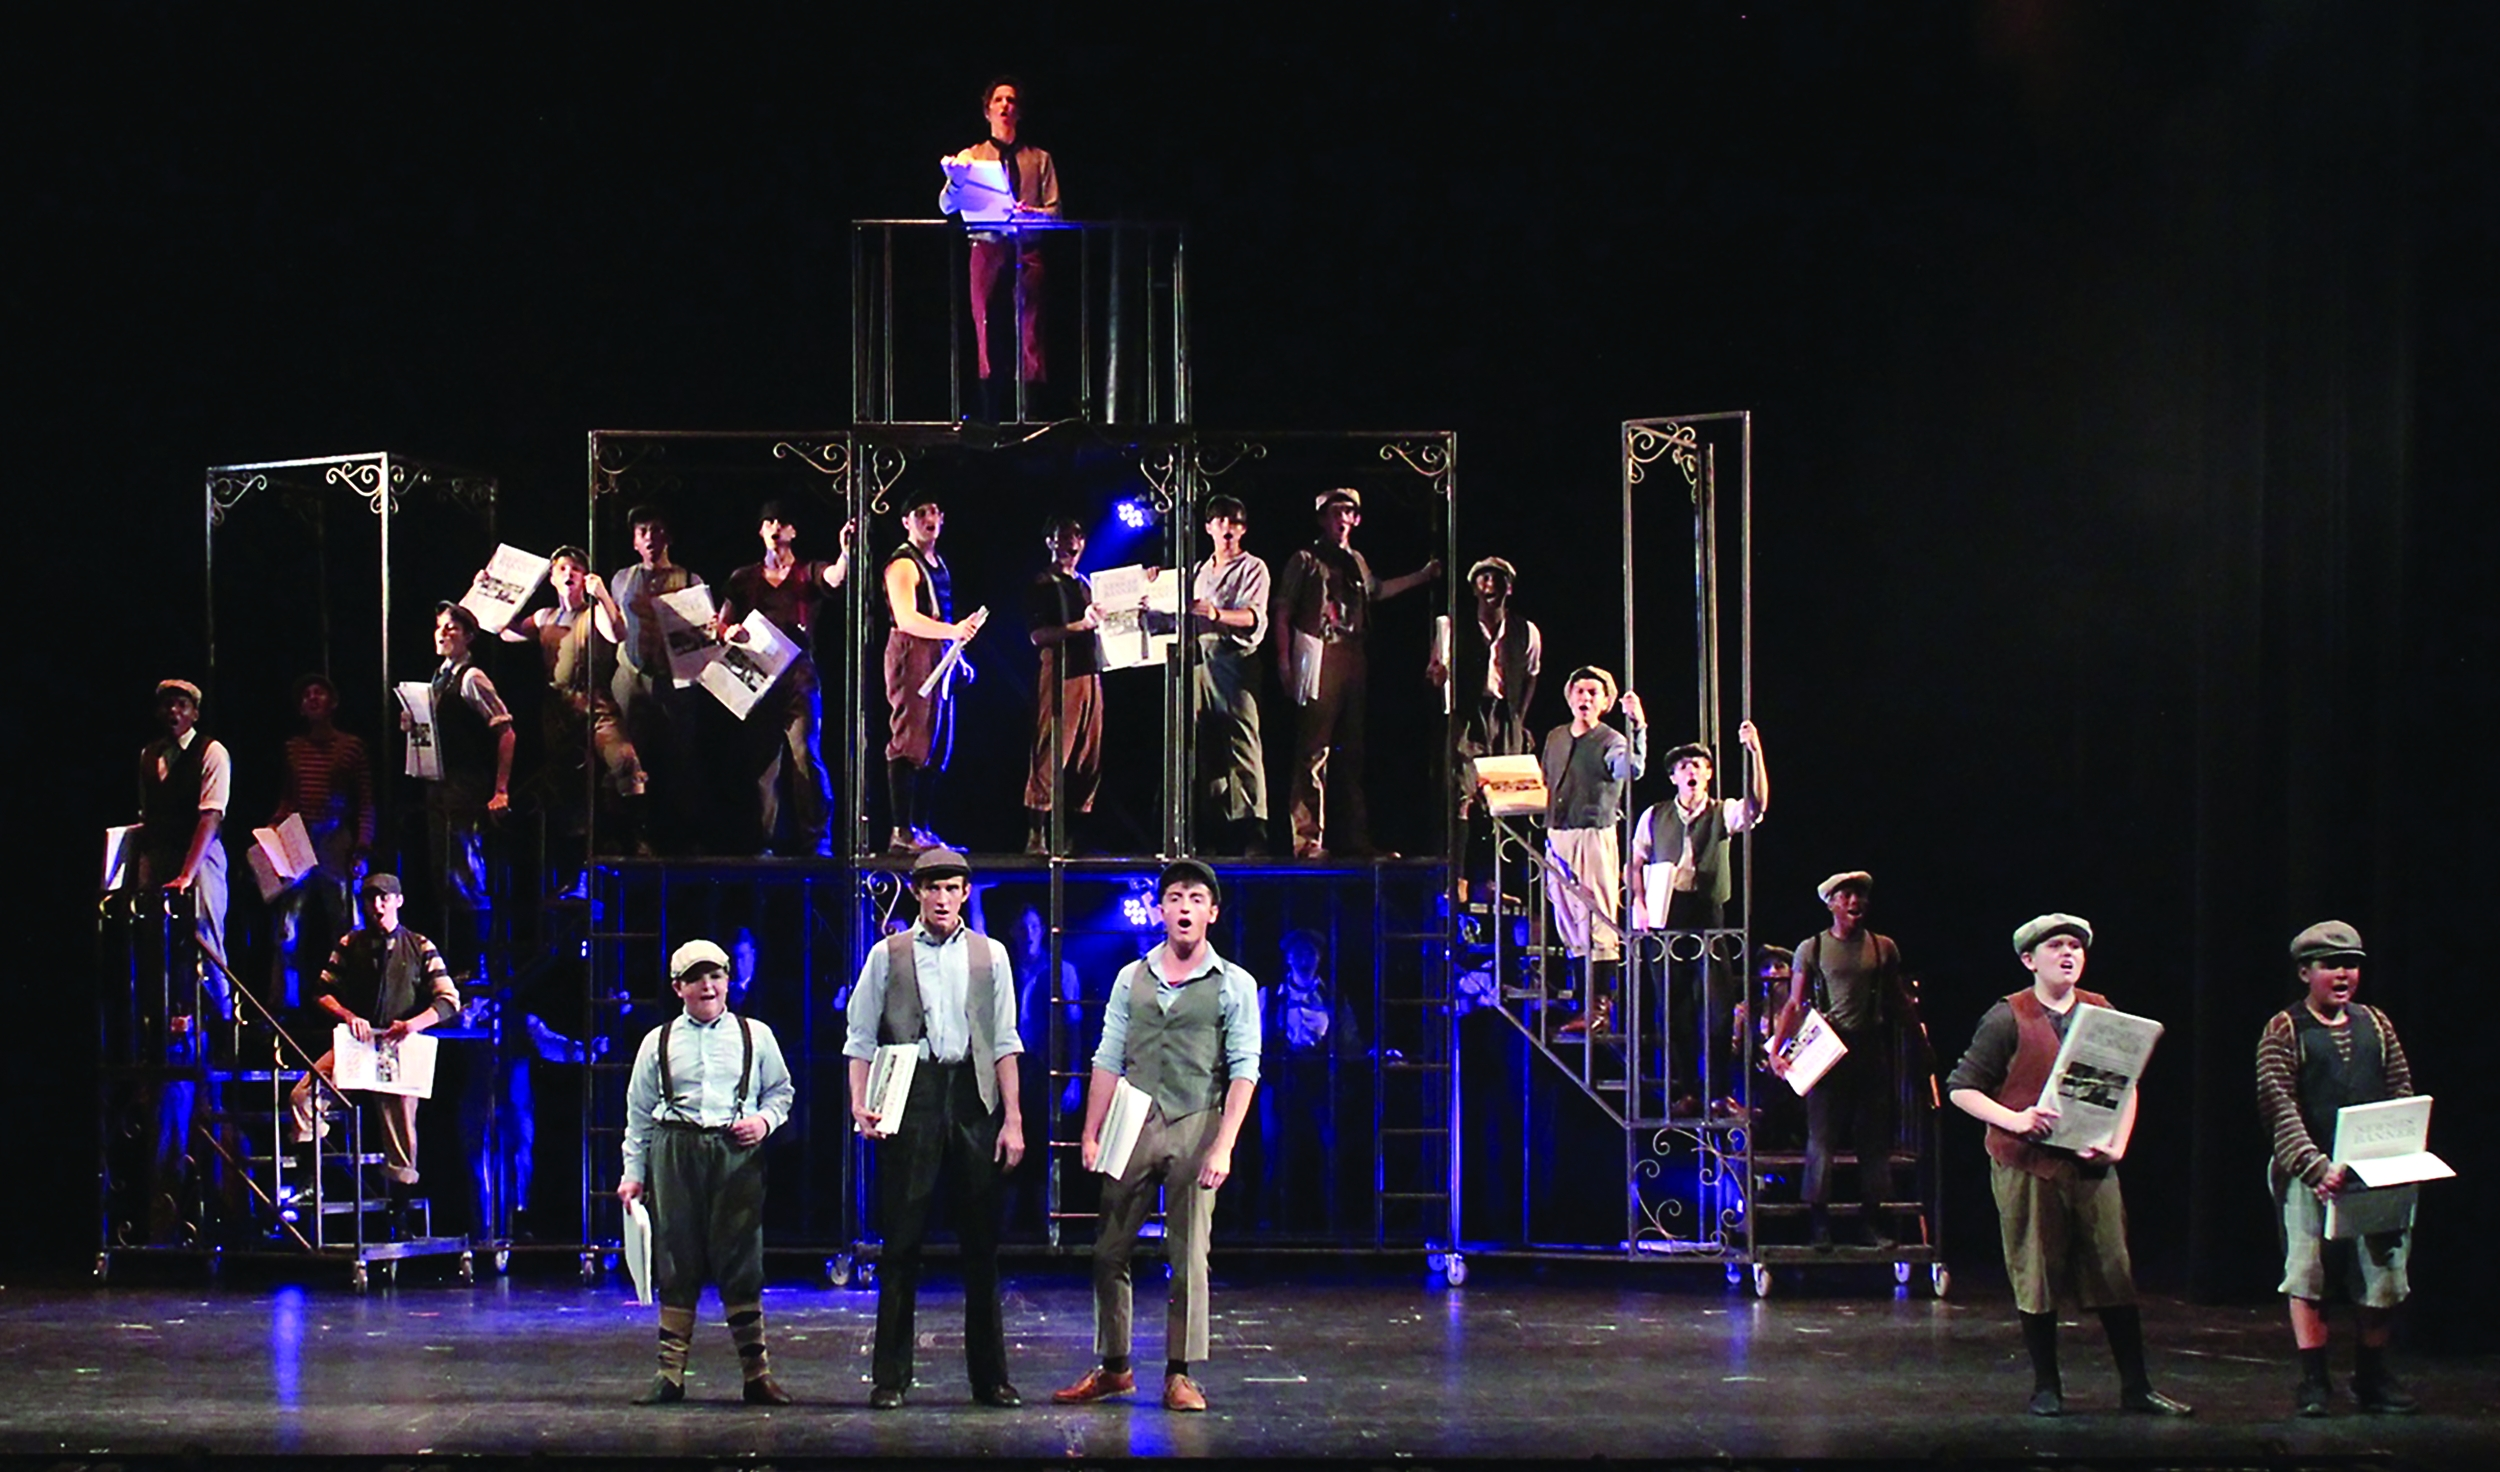 """Actors on stage sing in unison during a production of the """"Newsies."""""""